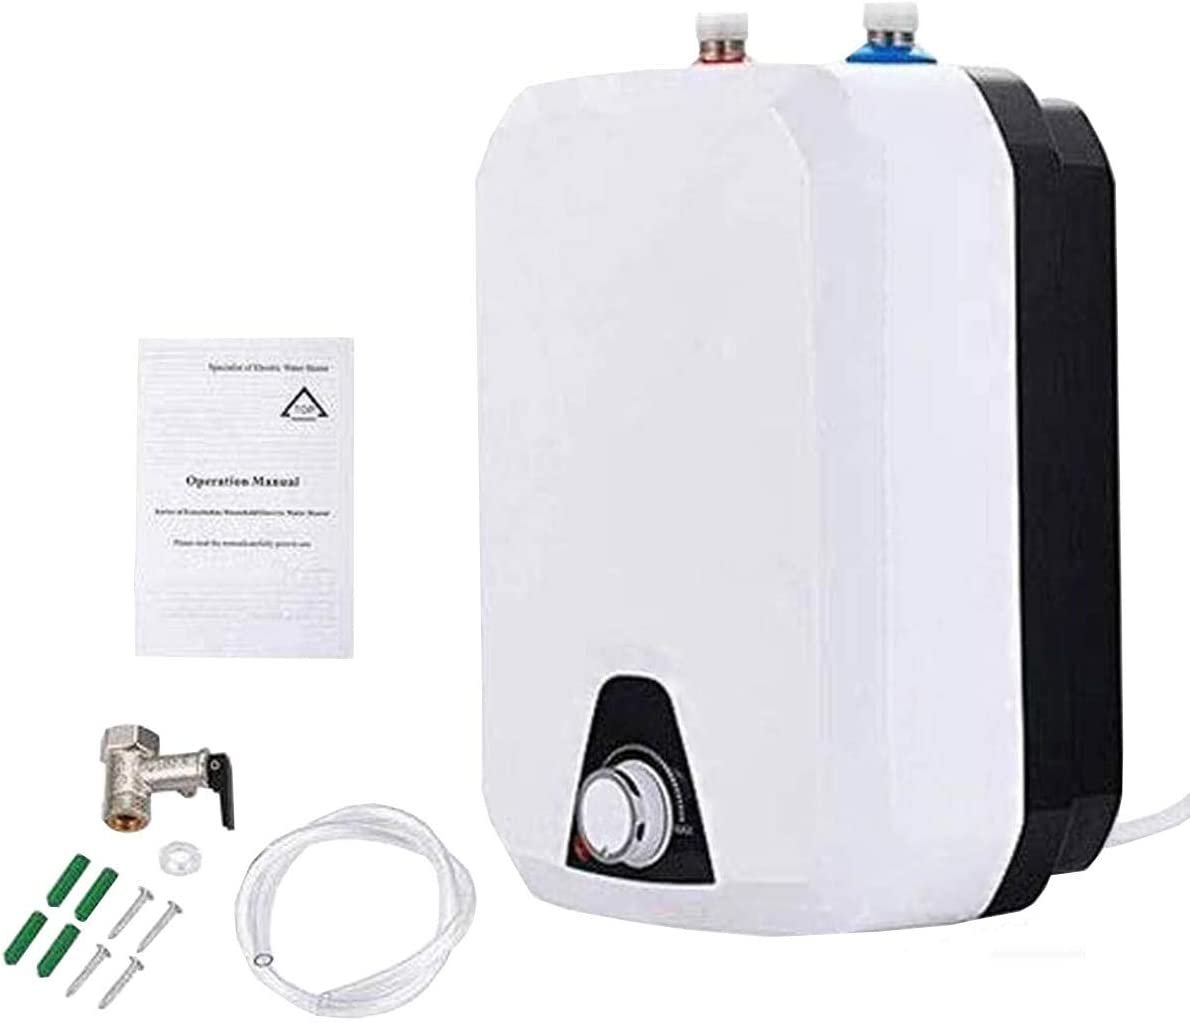 SUDEG Electric Hot Water Heater,1500W Electric 8L Tank Household Environmental IPX4 Water-Proof Level 110V 60HZ 9.4 x14.6×8.6